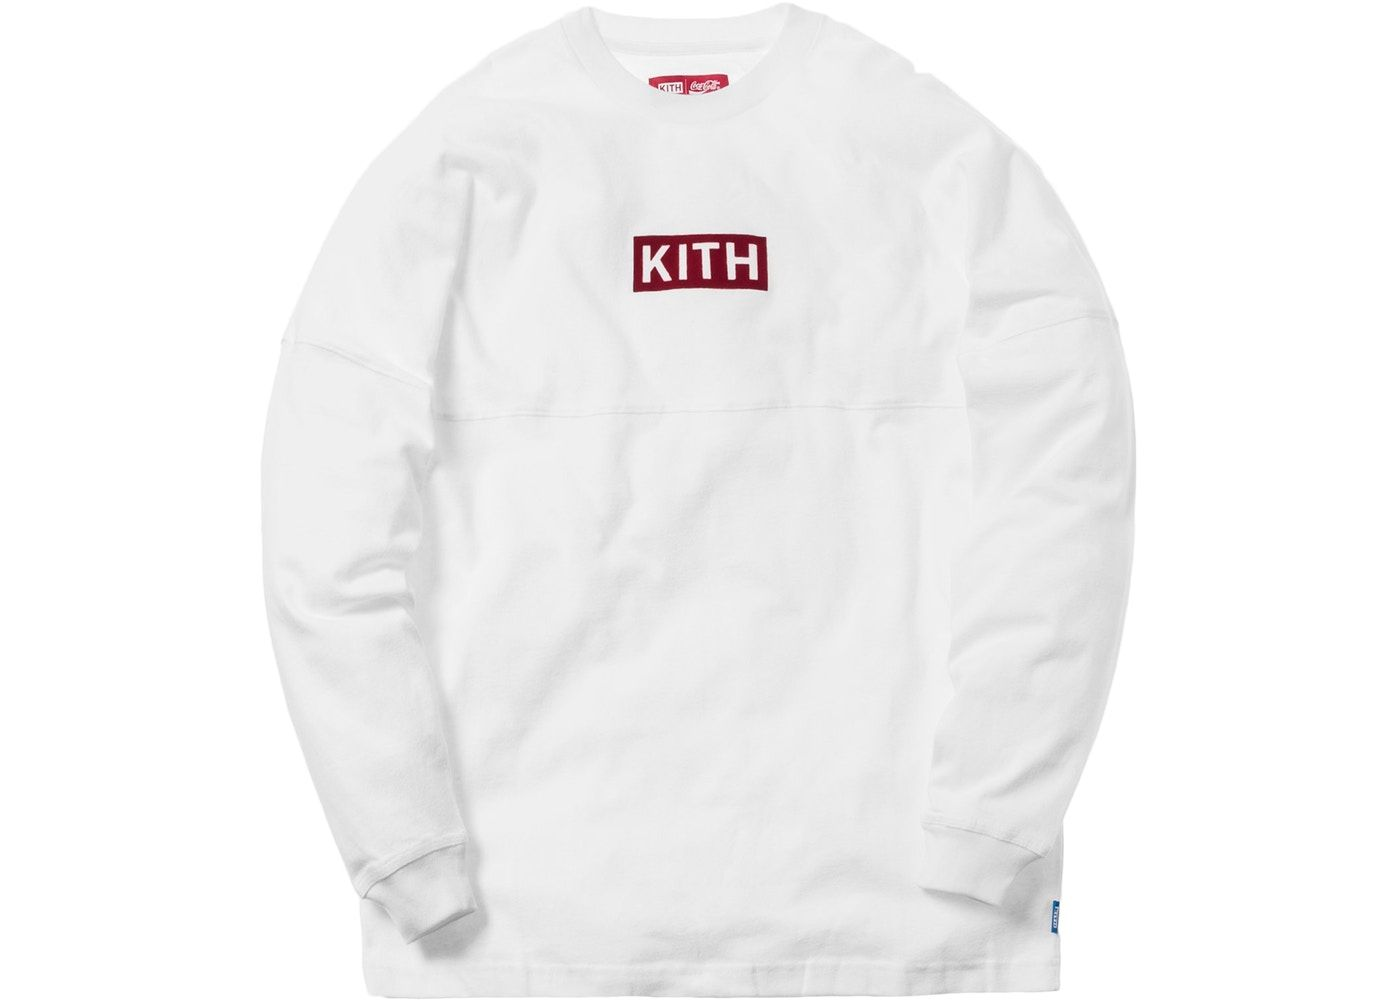 742a984a Kith x Coca-Cola Global L/S Tee White in 2019 | Gunning | Coca cola ...